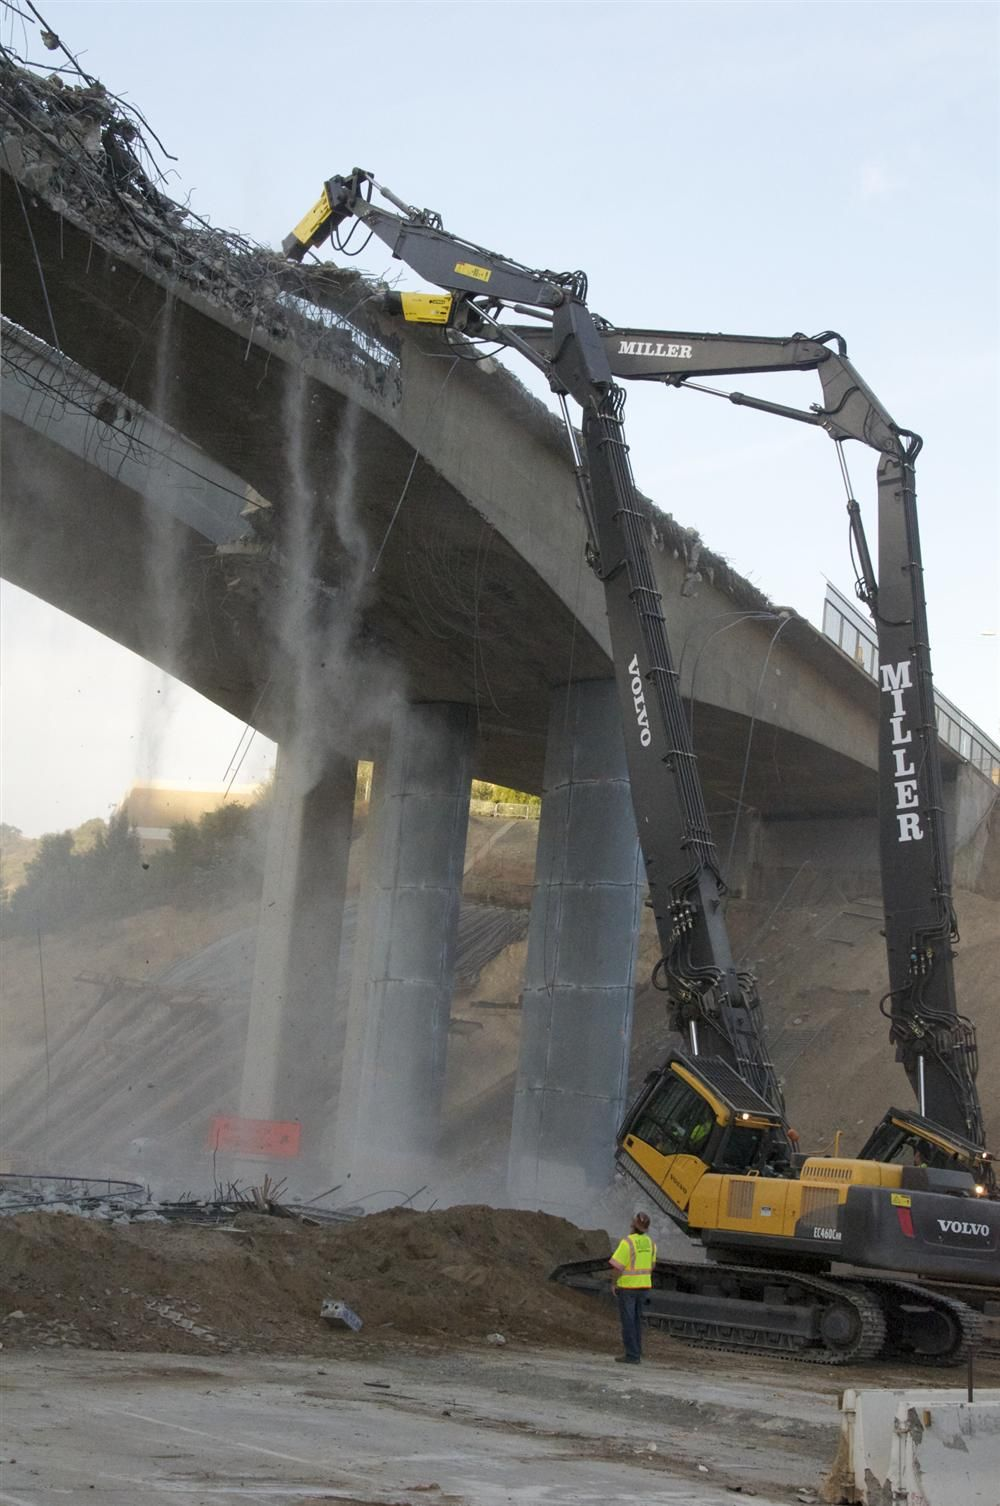 I-405 work crews steadily demolish the north side of Mulholland Bridge during Carmageddon II.